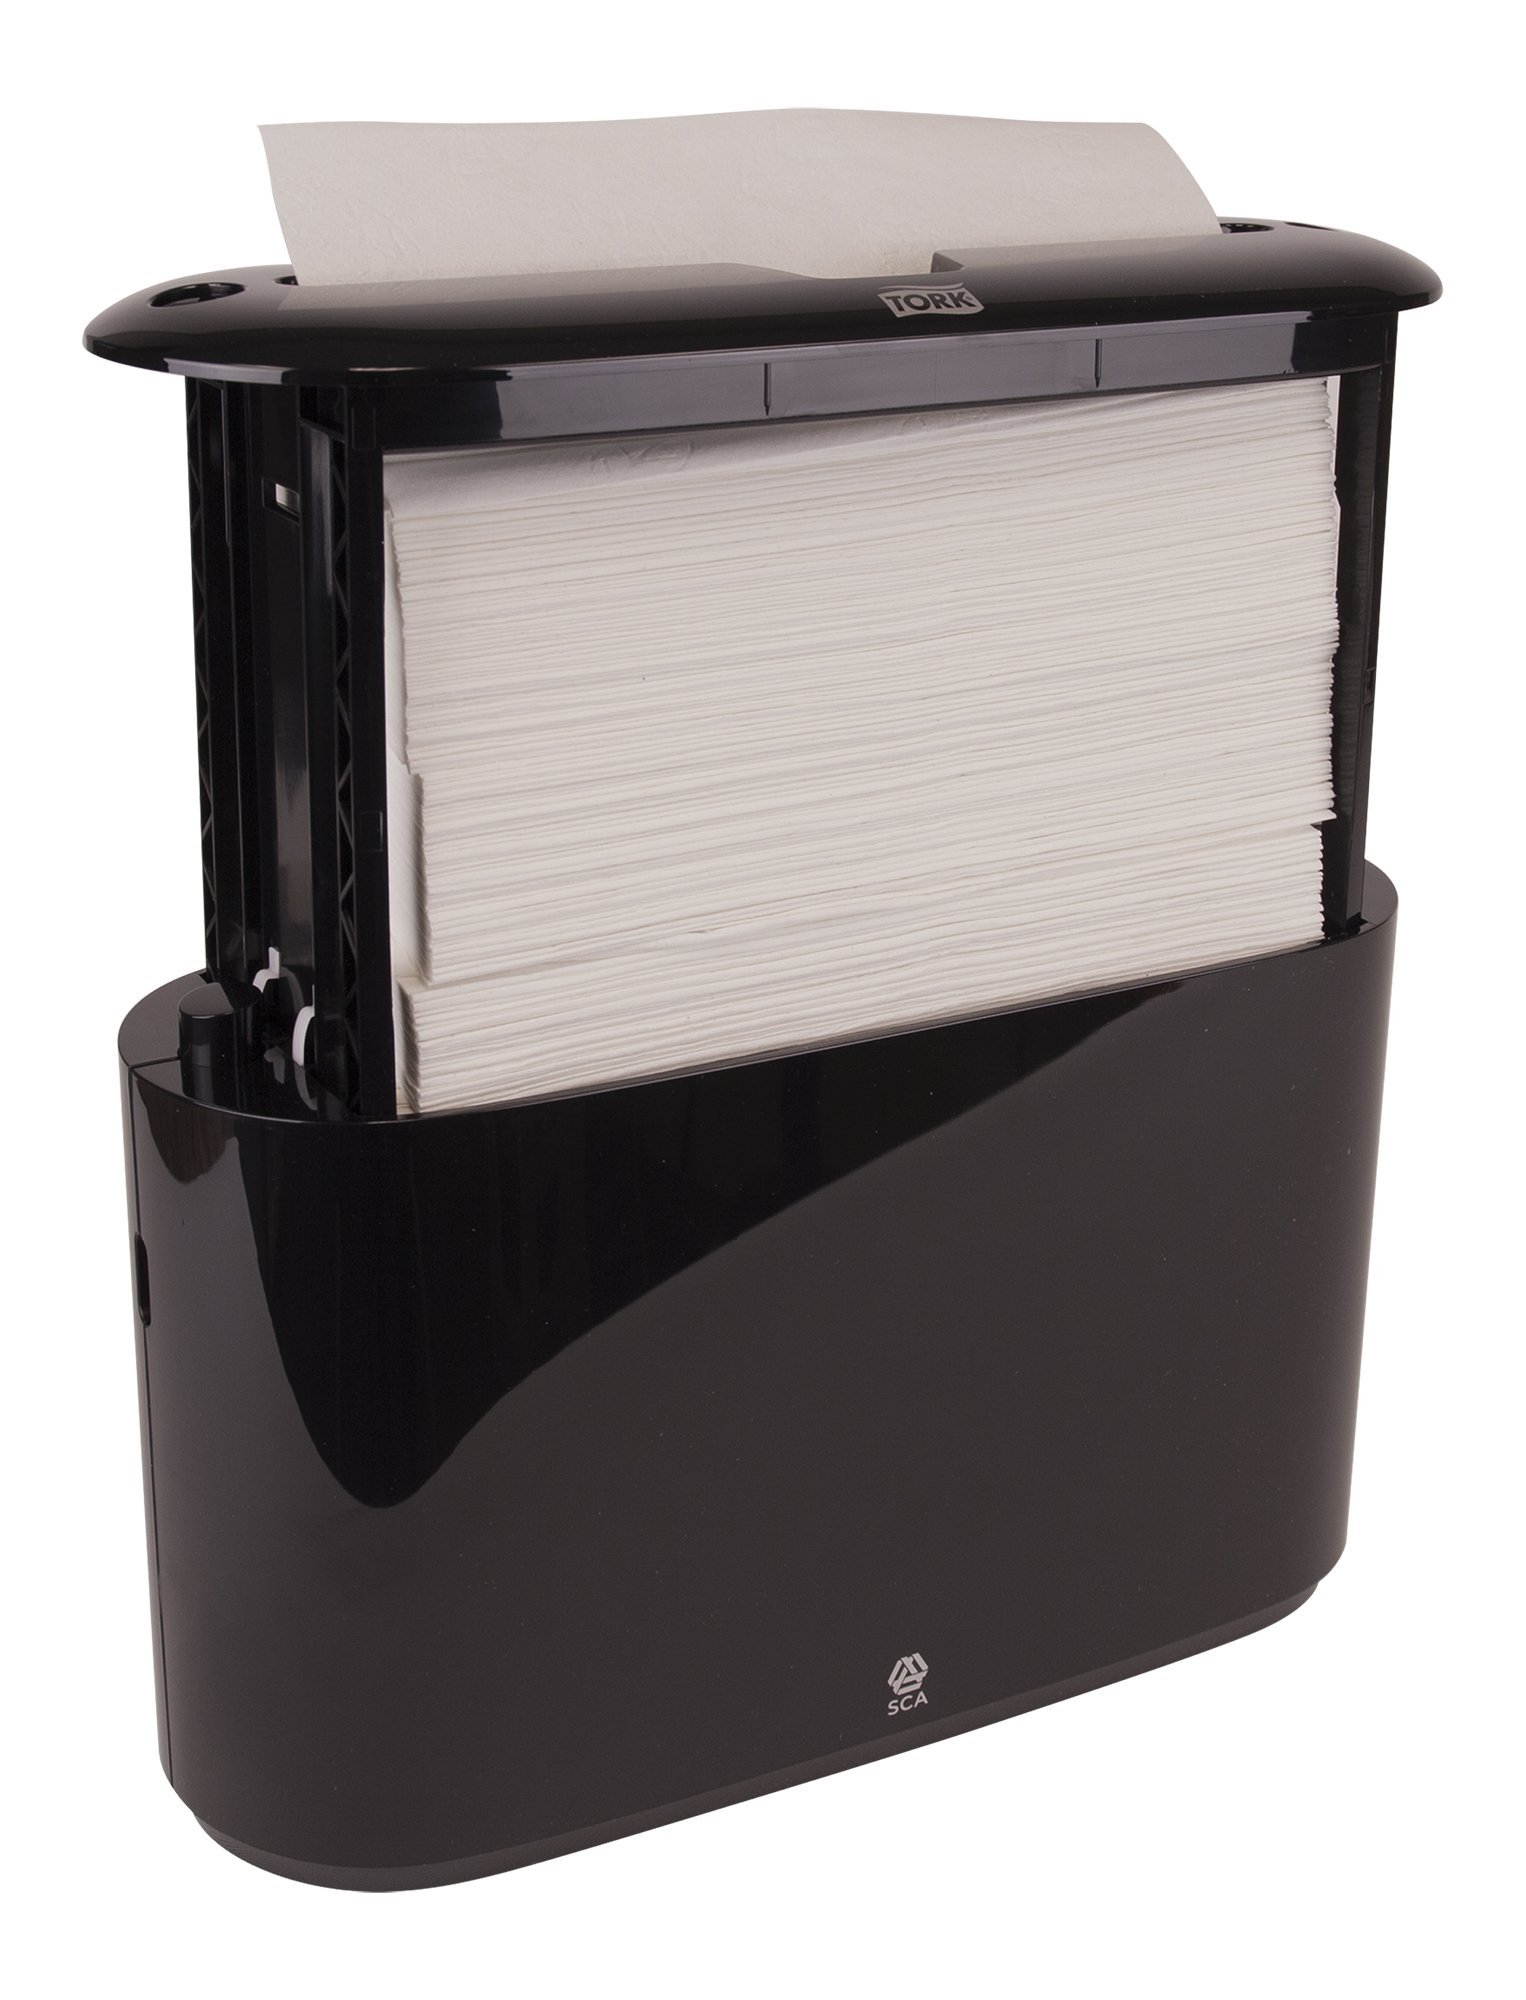 Tork 302028 Xpress Countertop Multifold Hand Towel Dispenser, Plastic, 7.92'' Height x 12.68'' Width x 4.56'' Depth, Black, for use with Tork MB550A, MB640, MB540A, H2/H23 by Tork (Image #6)